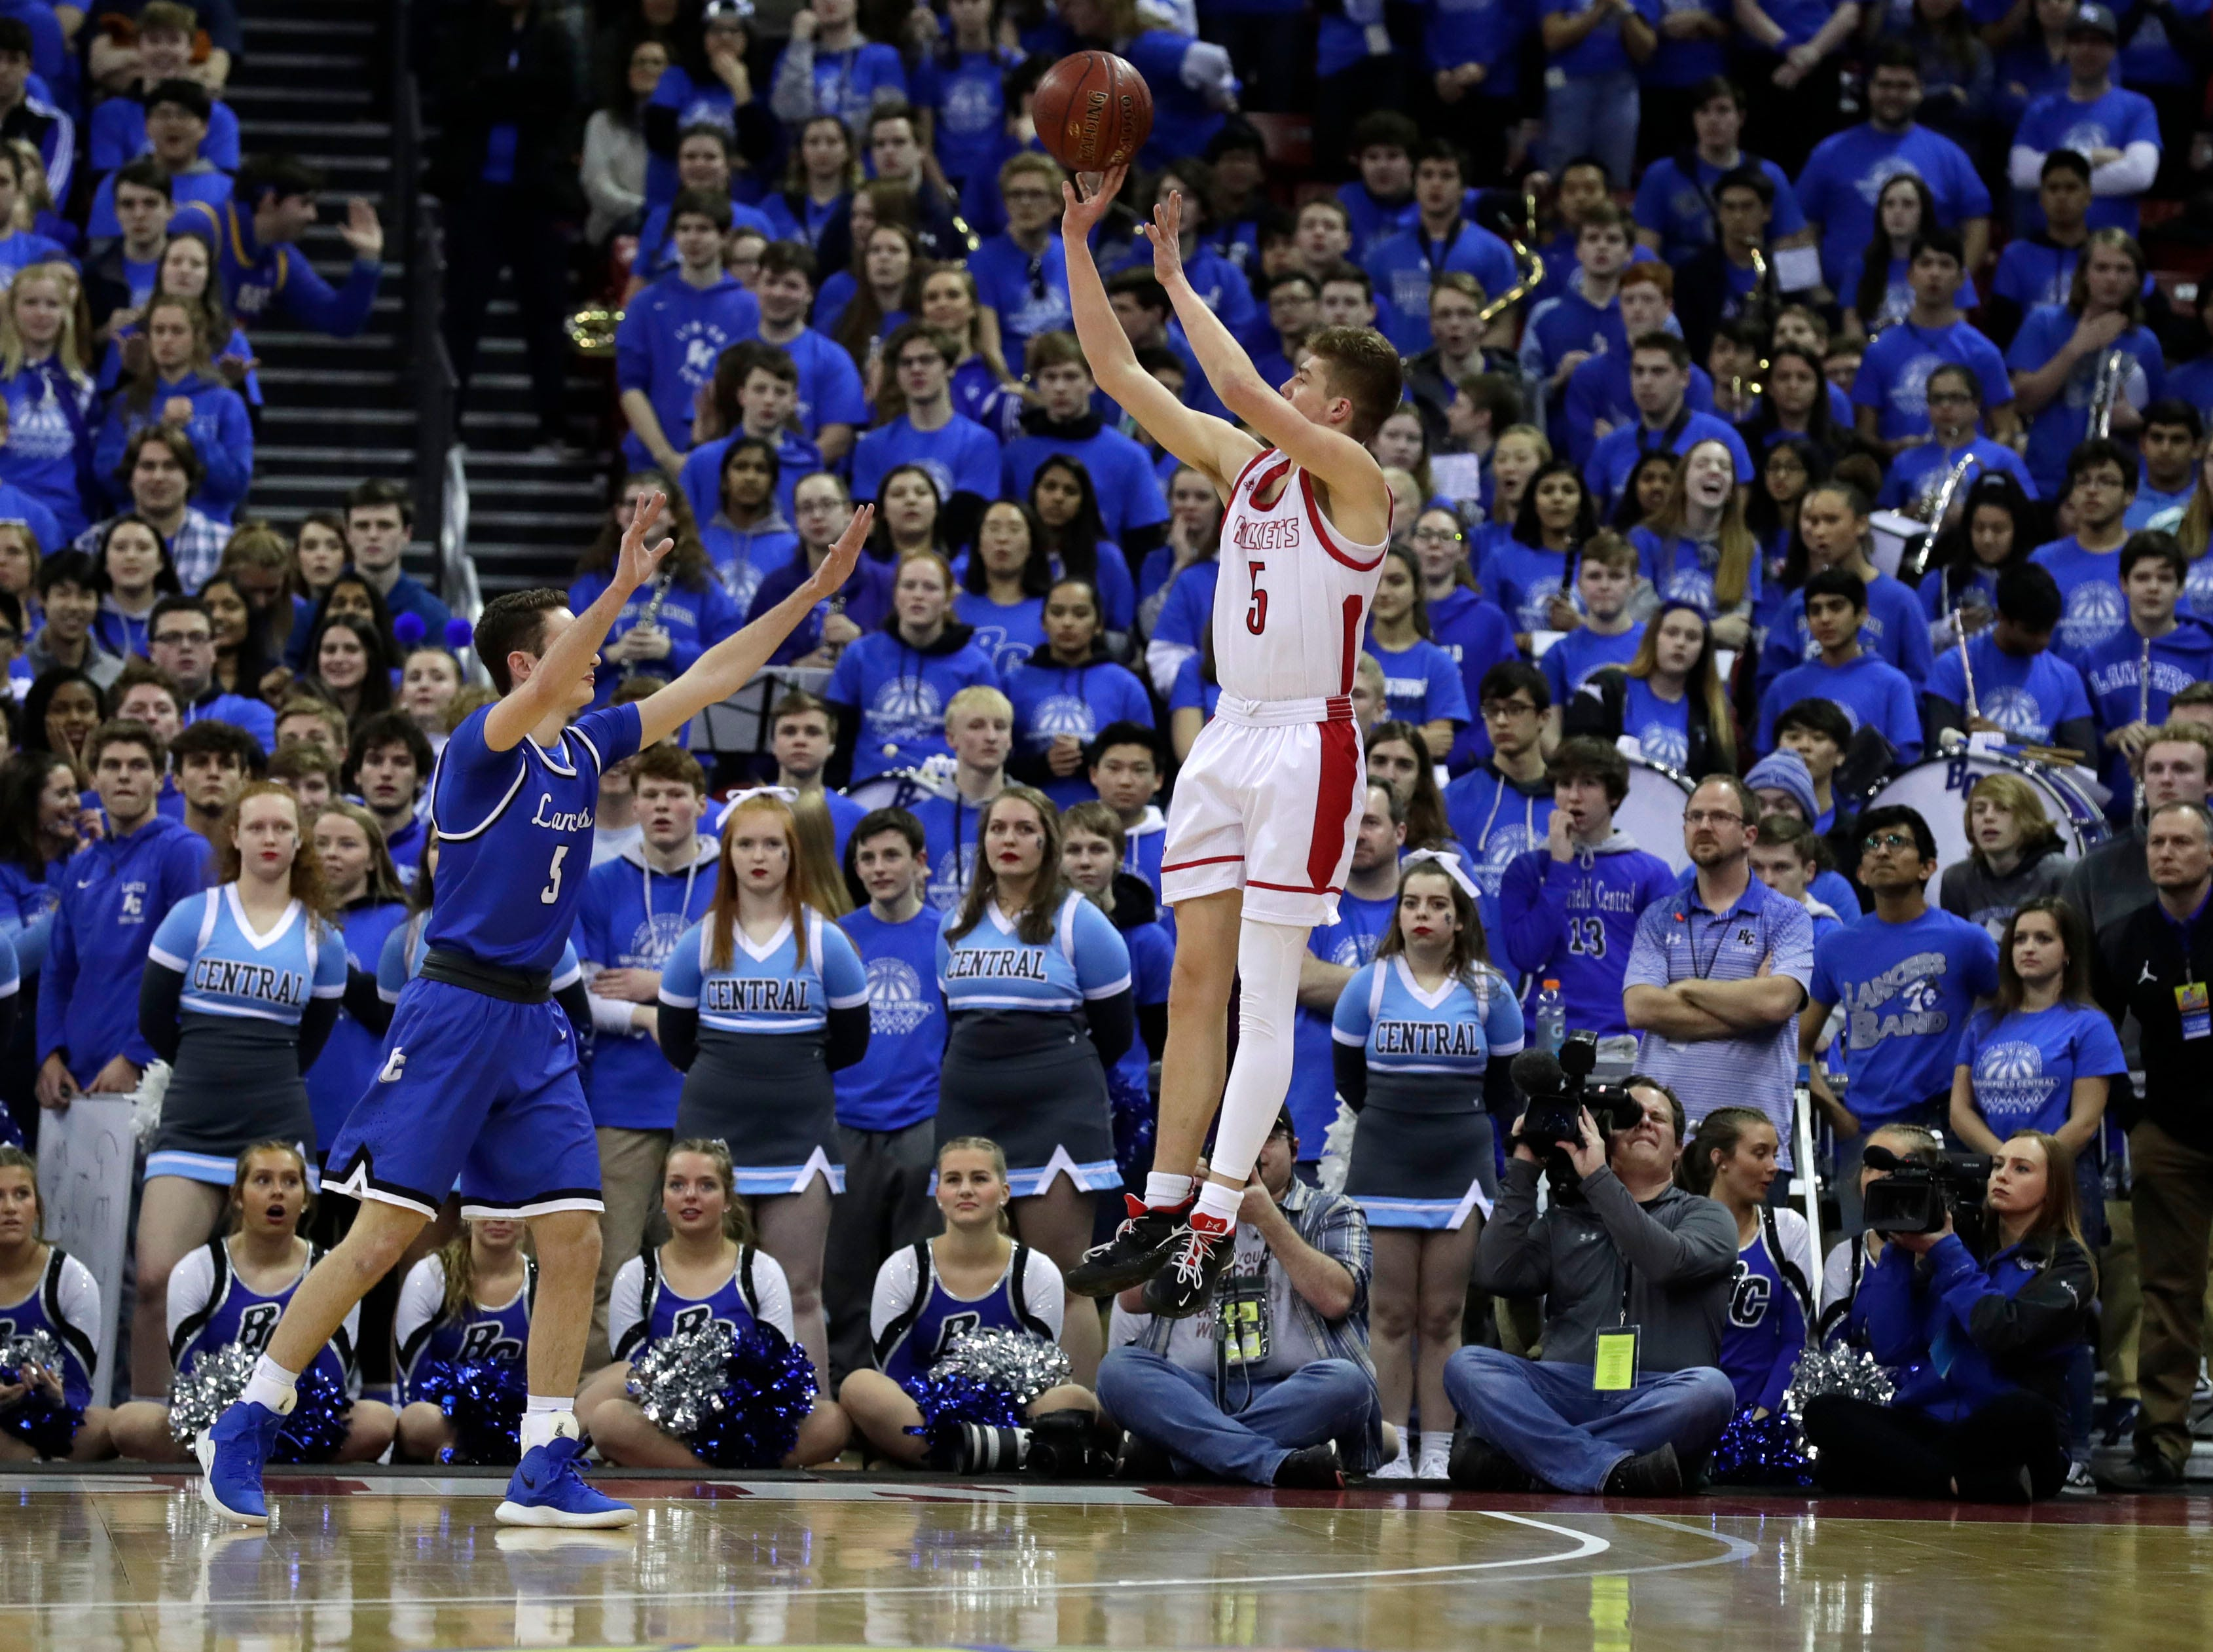 Neenah's Max Klesmit hits a shot Friday night with the Brookfield Central student section watching.